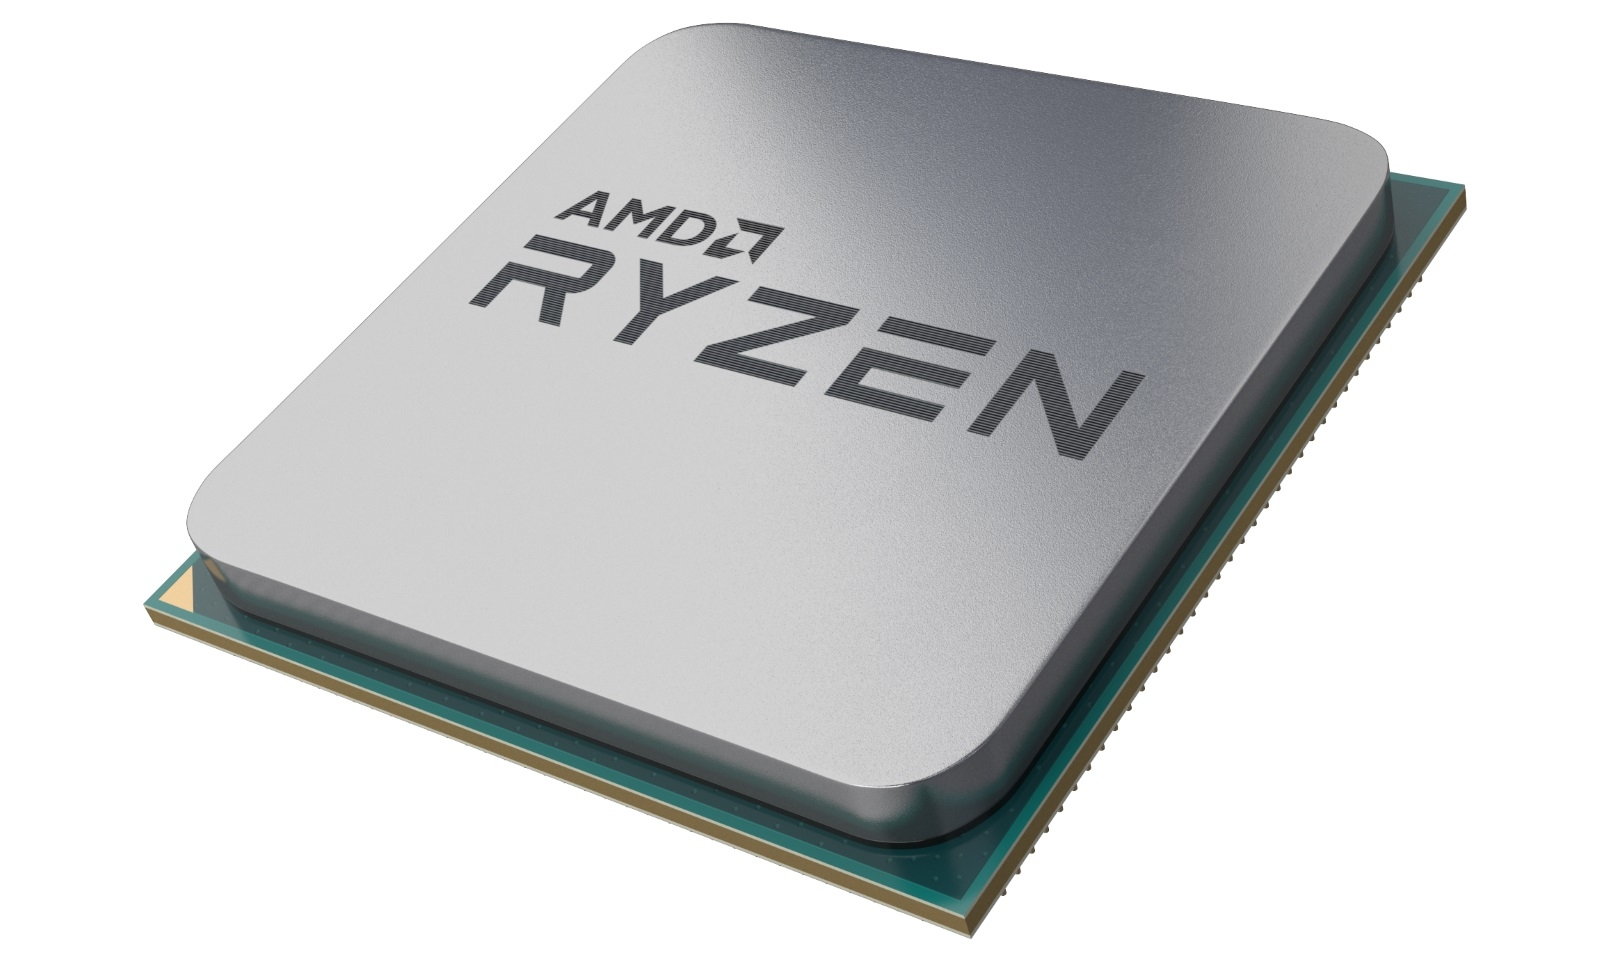 First third-party gaming benchmarks for AMD Ryzen 7 2700X surface online